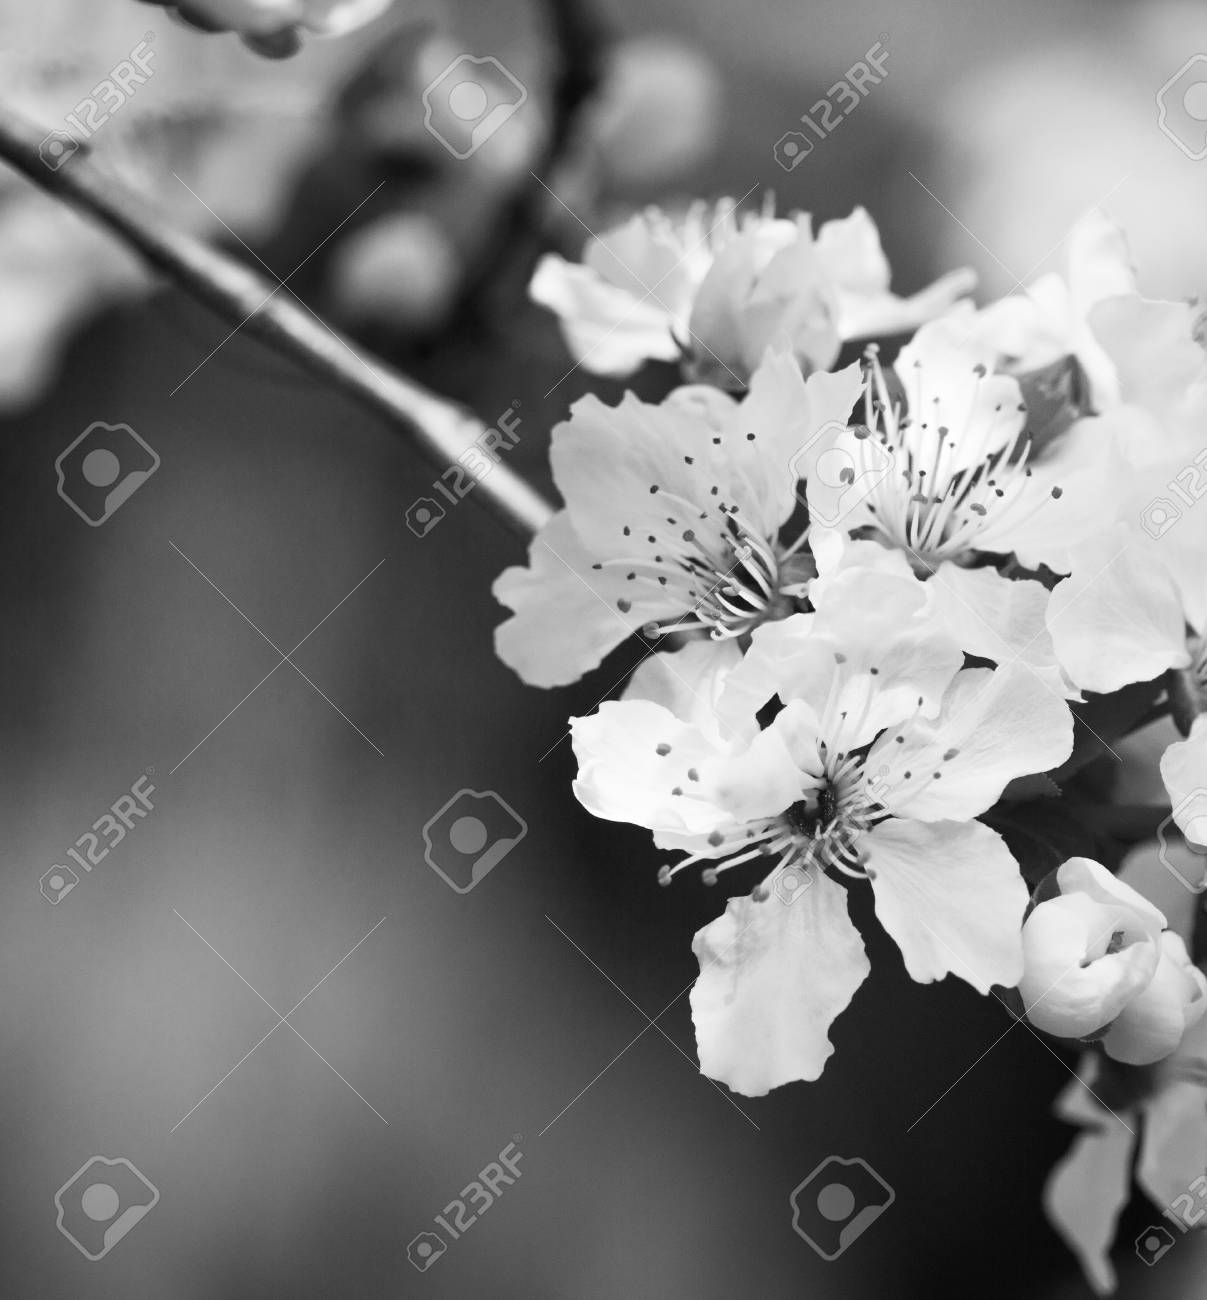 Apricot Tree Branch With White Flowers In Early Spring With Stock